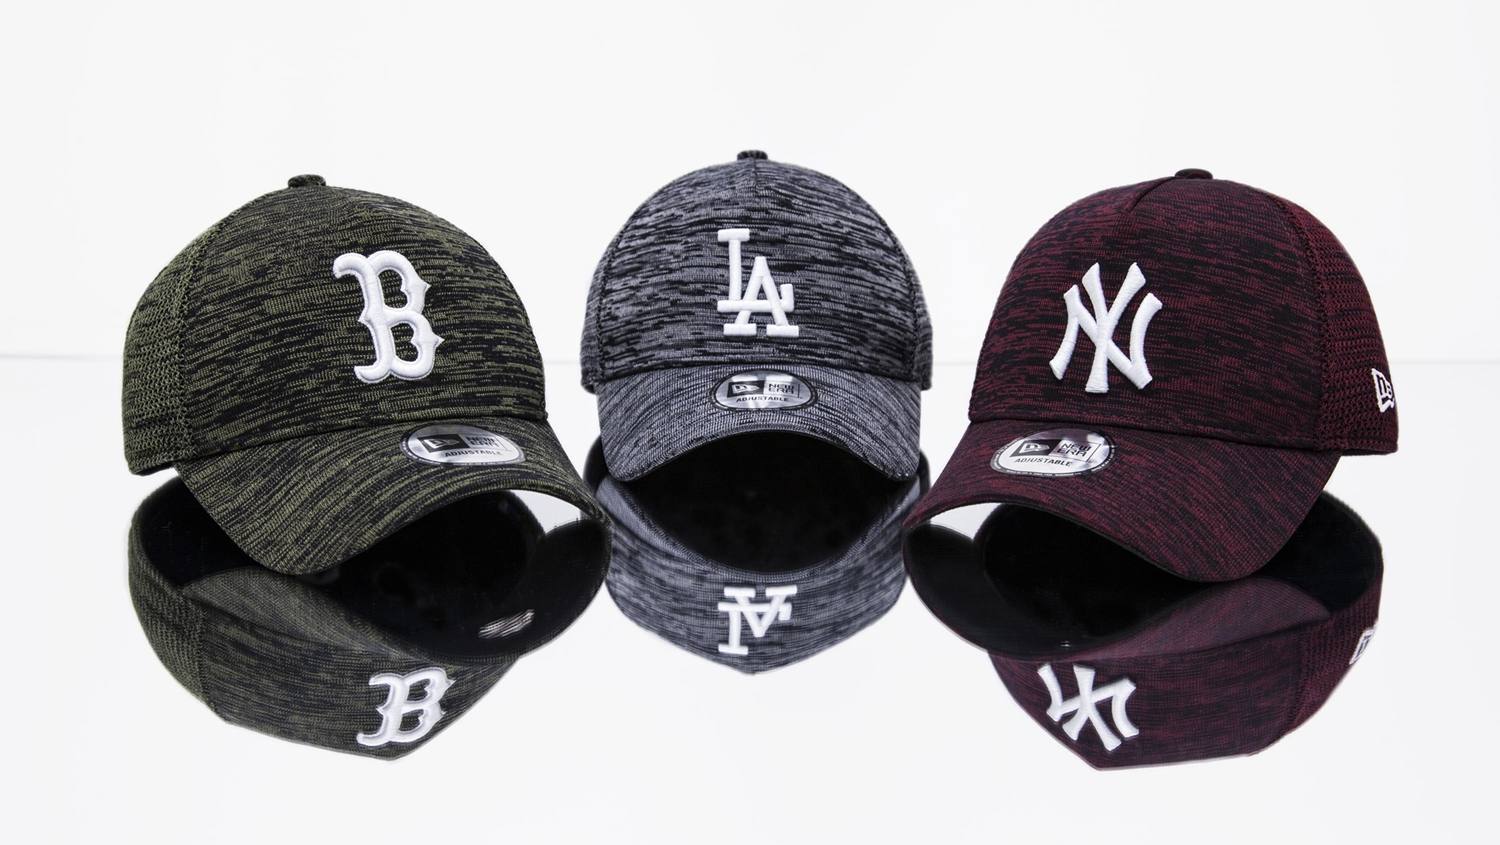 New Era Engineered Fit | Neue Cap Styles dank exklusivem Air-Knit-Gewebe